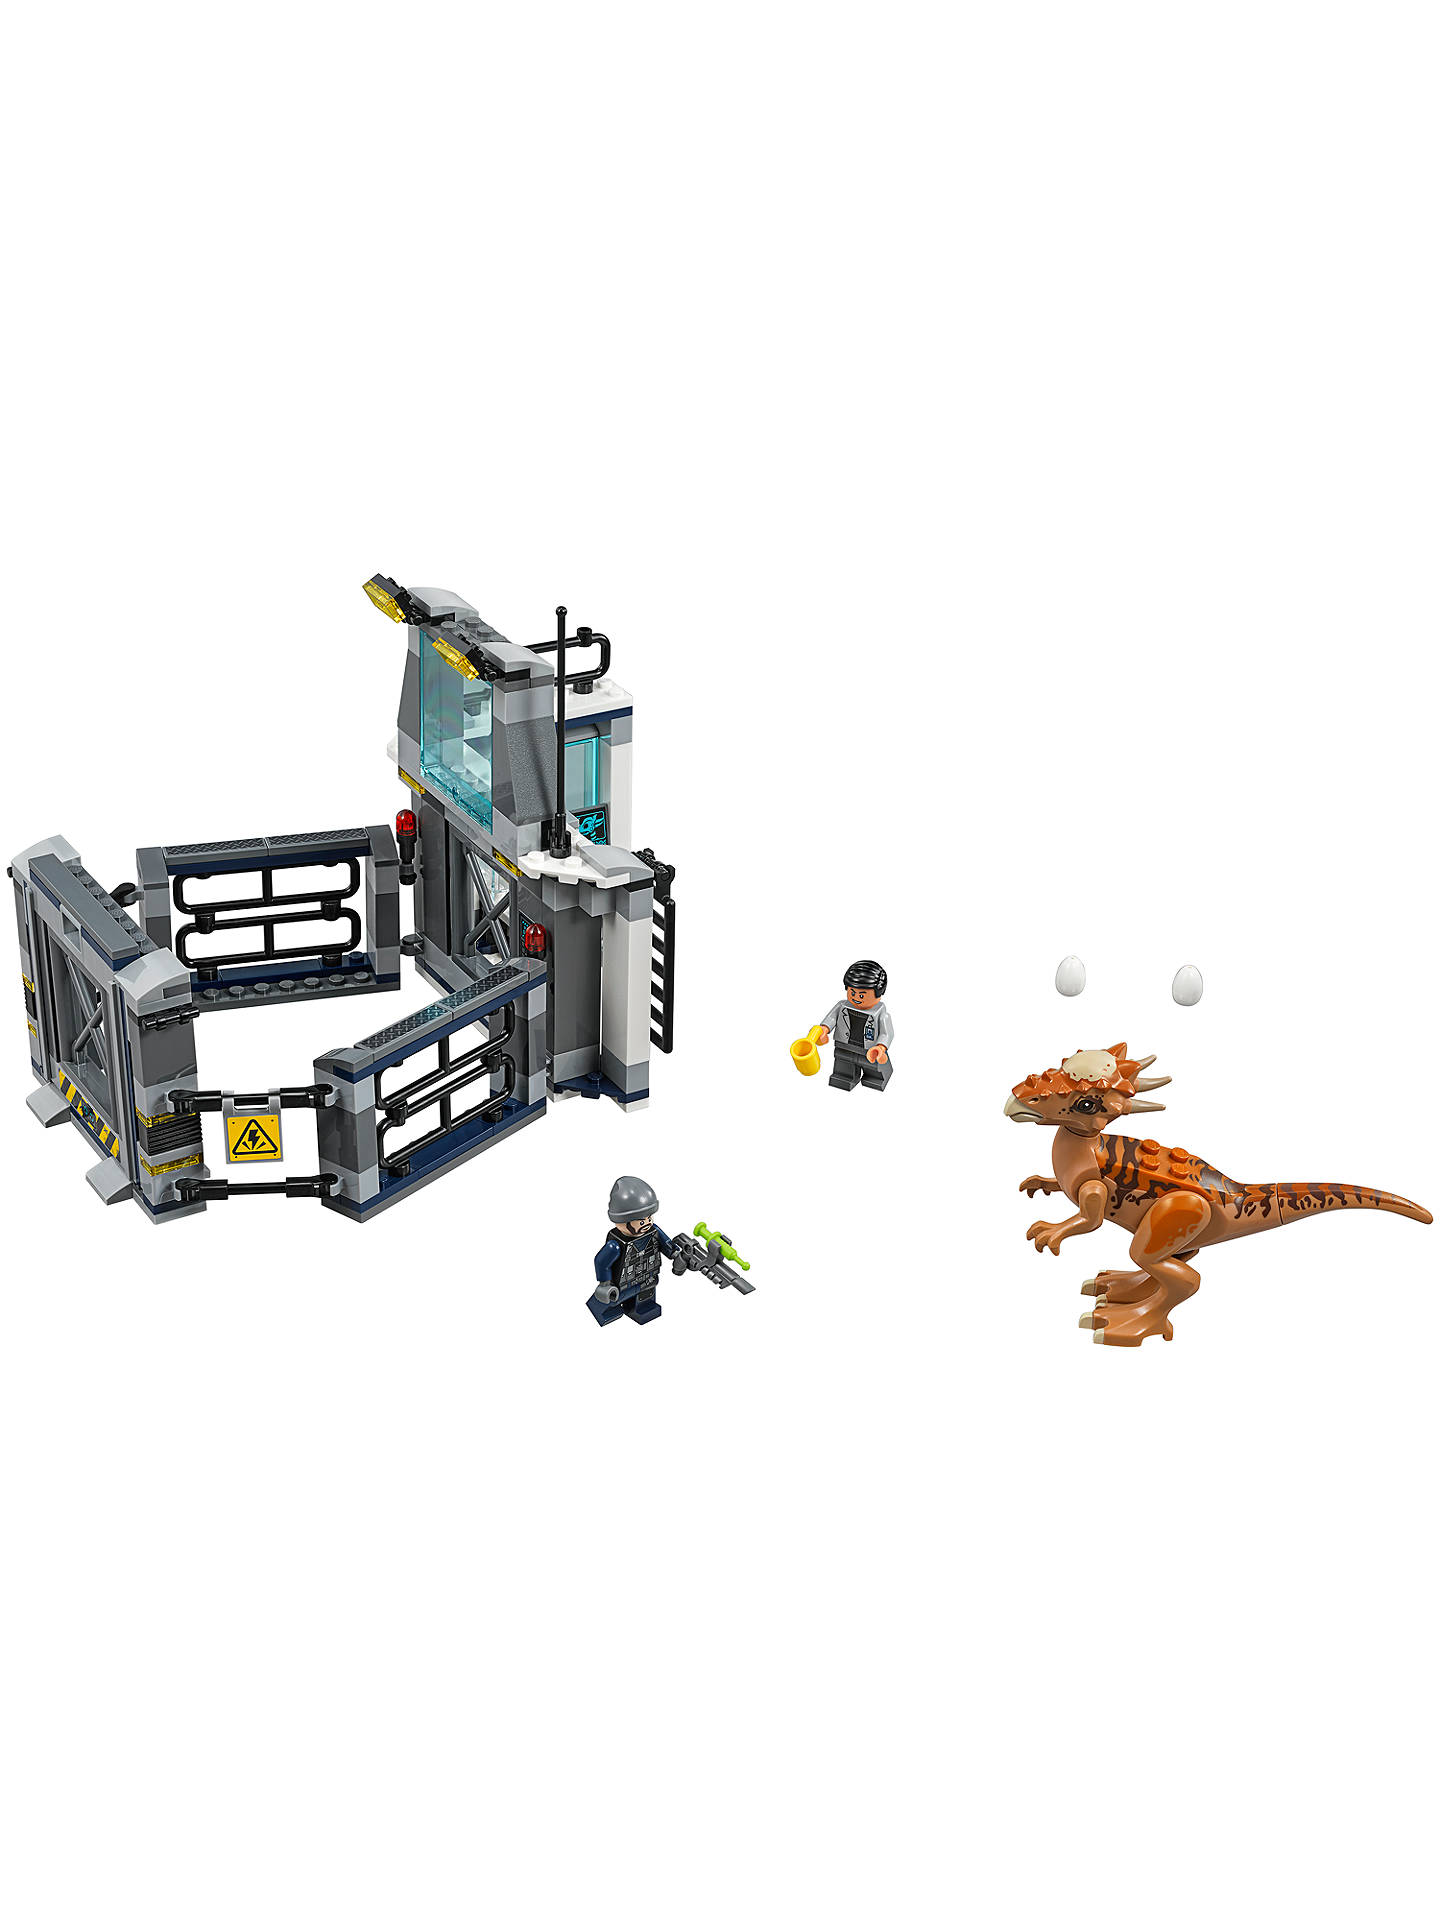 LEGO Jurassic World 75927 Stygimoloch Breakout STICKER SHEET